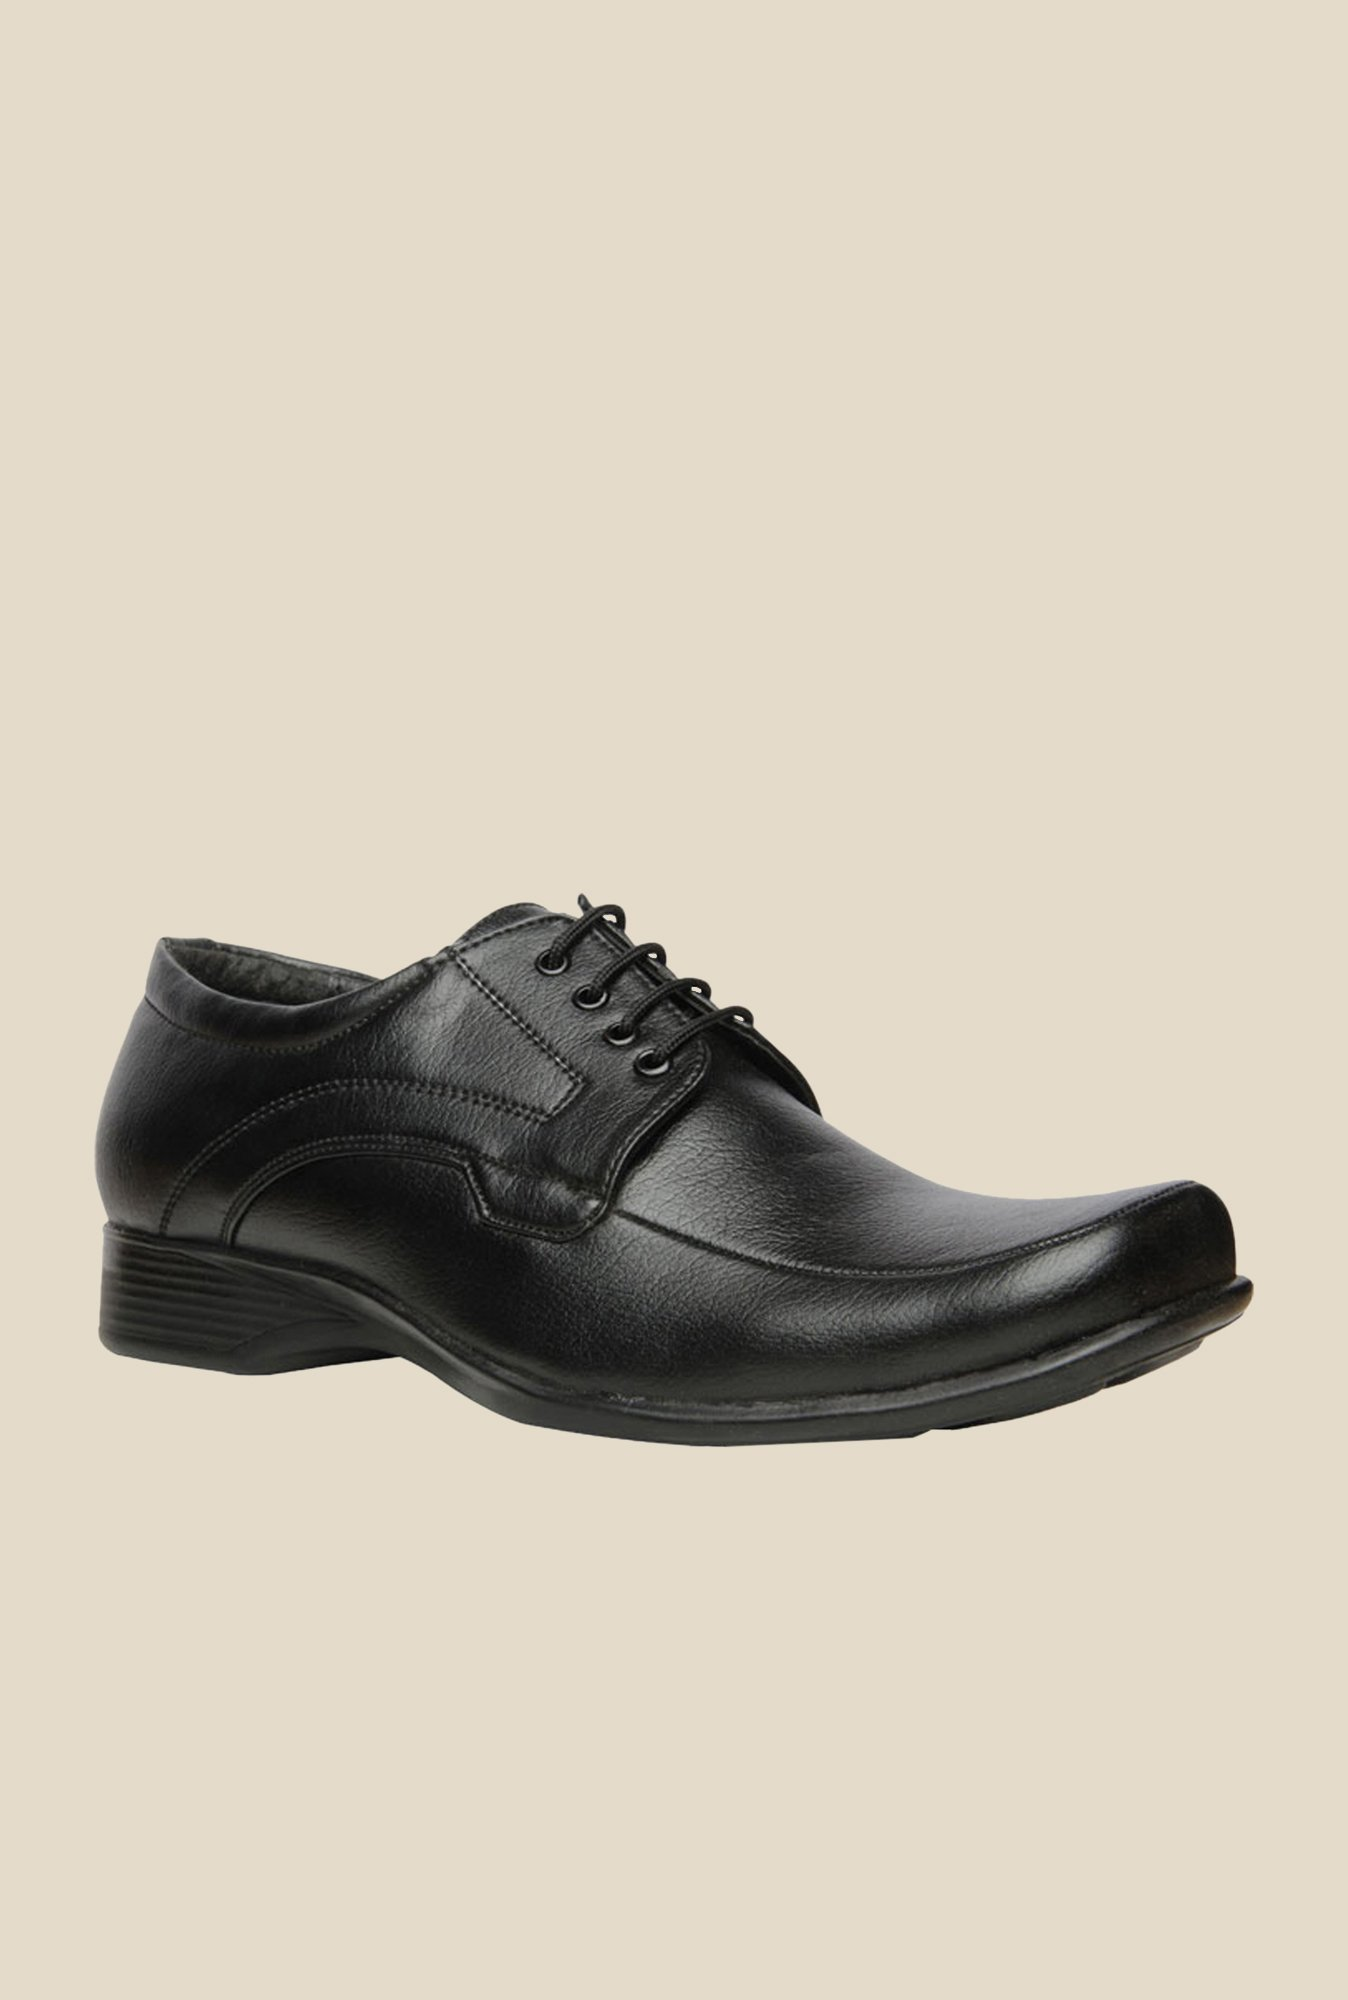 Bata Quin Two Black Derby Shoes